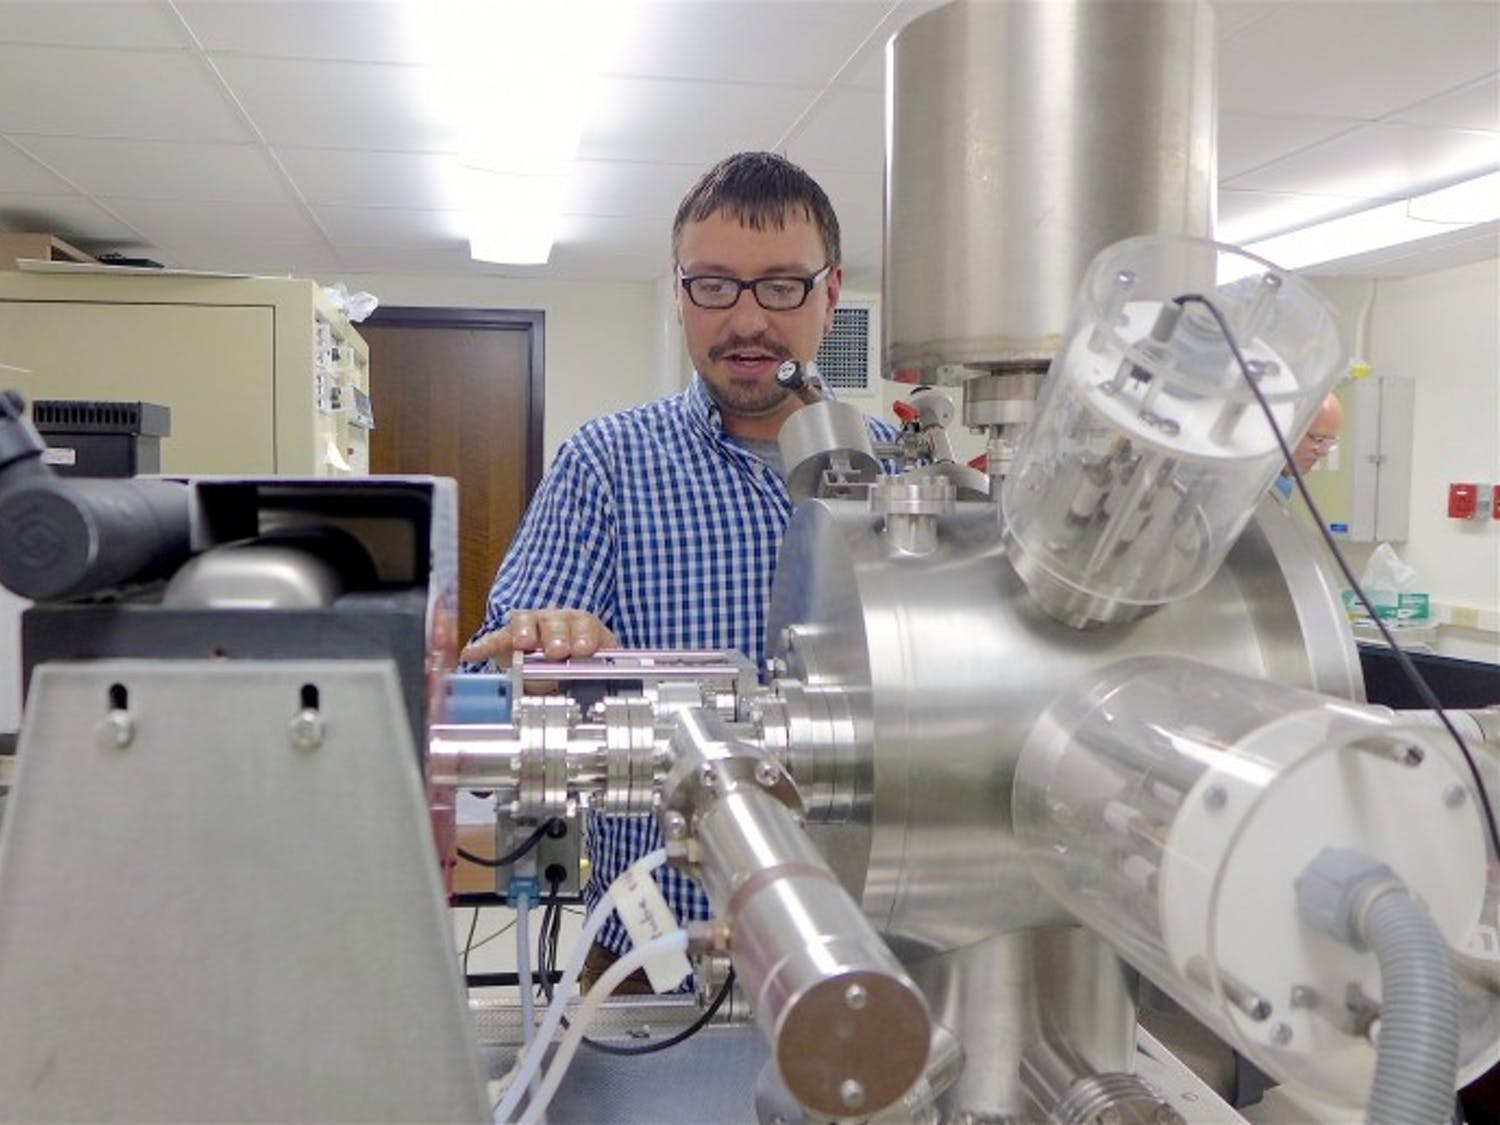 Aaron Satkoski used the UW-Madison Department of Geoscience's mass spectrometer to measure isotopes in samples collected from South Africa.